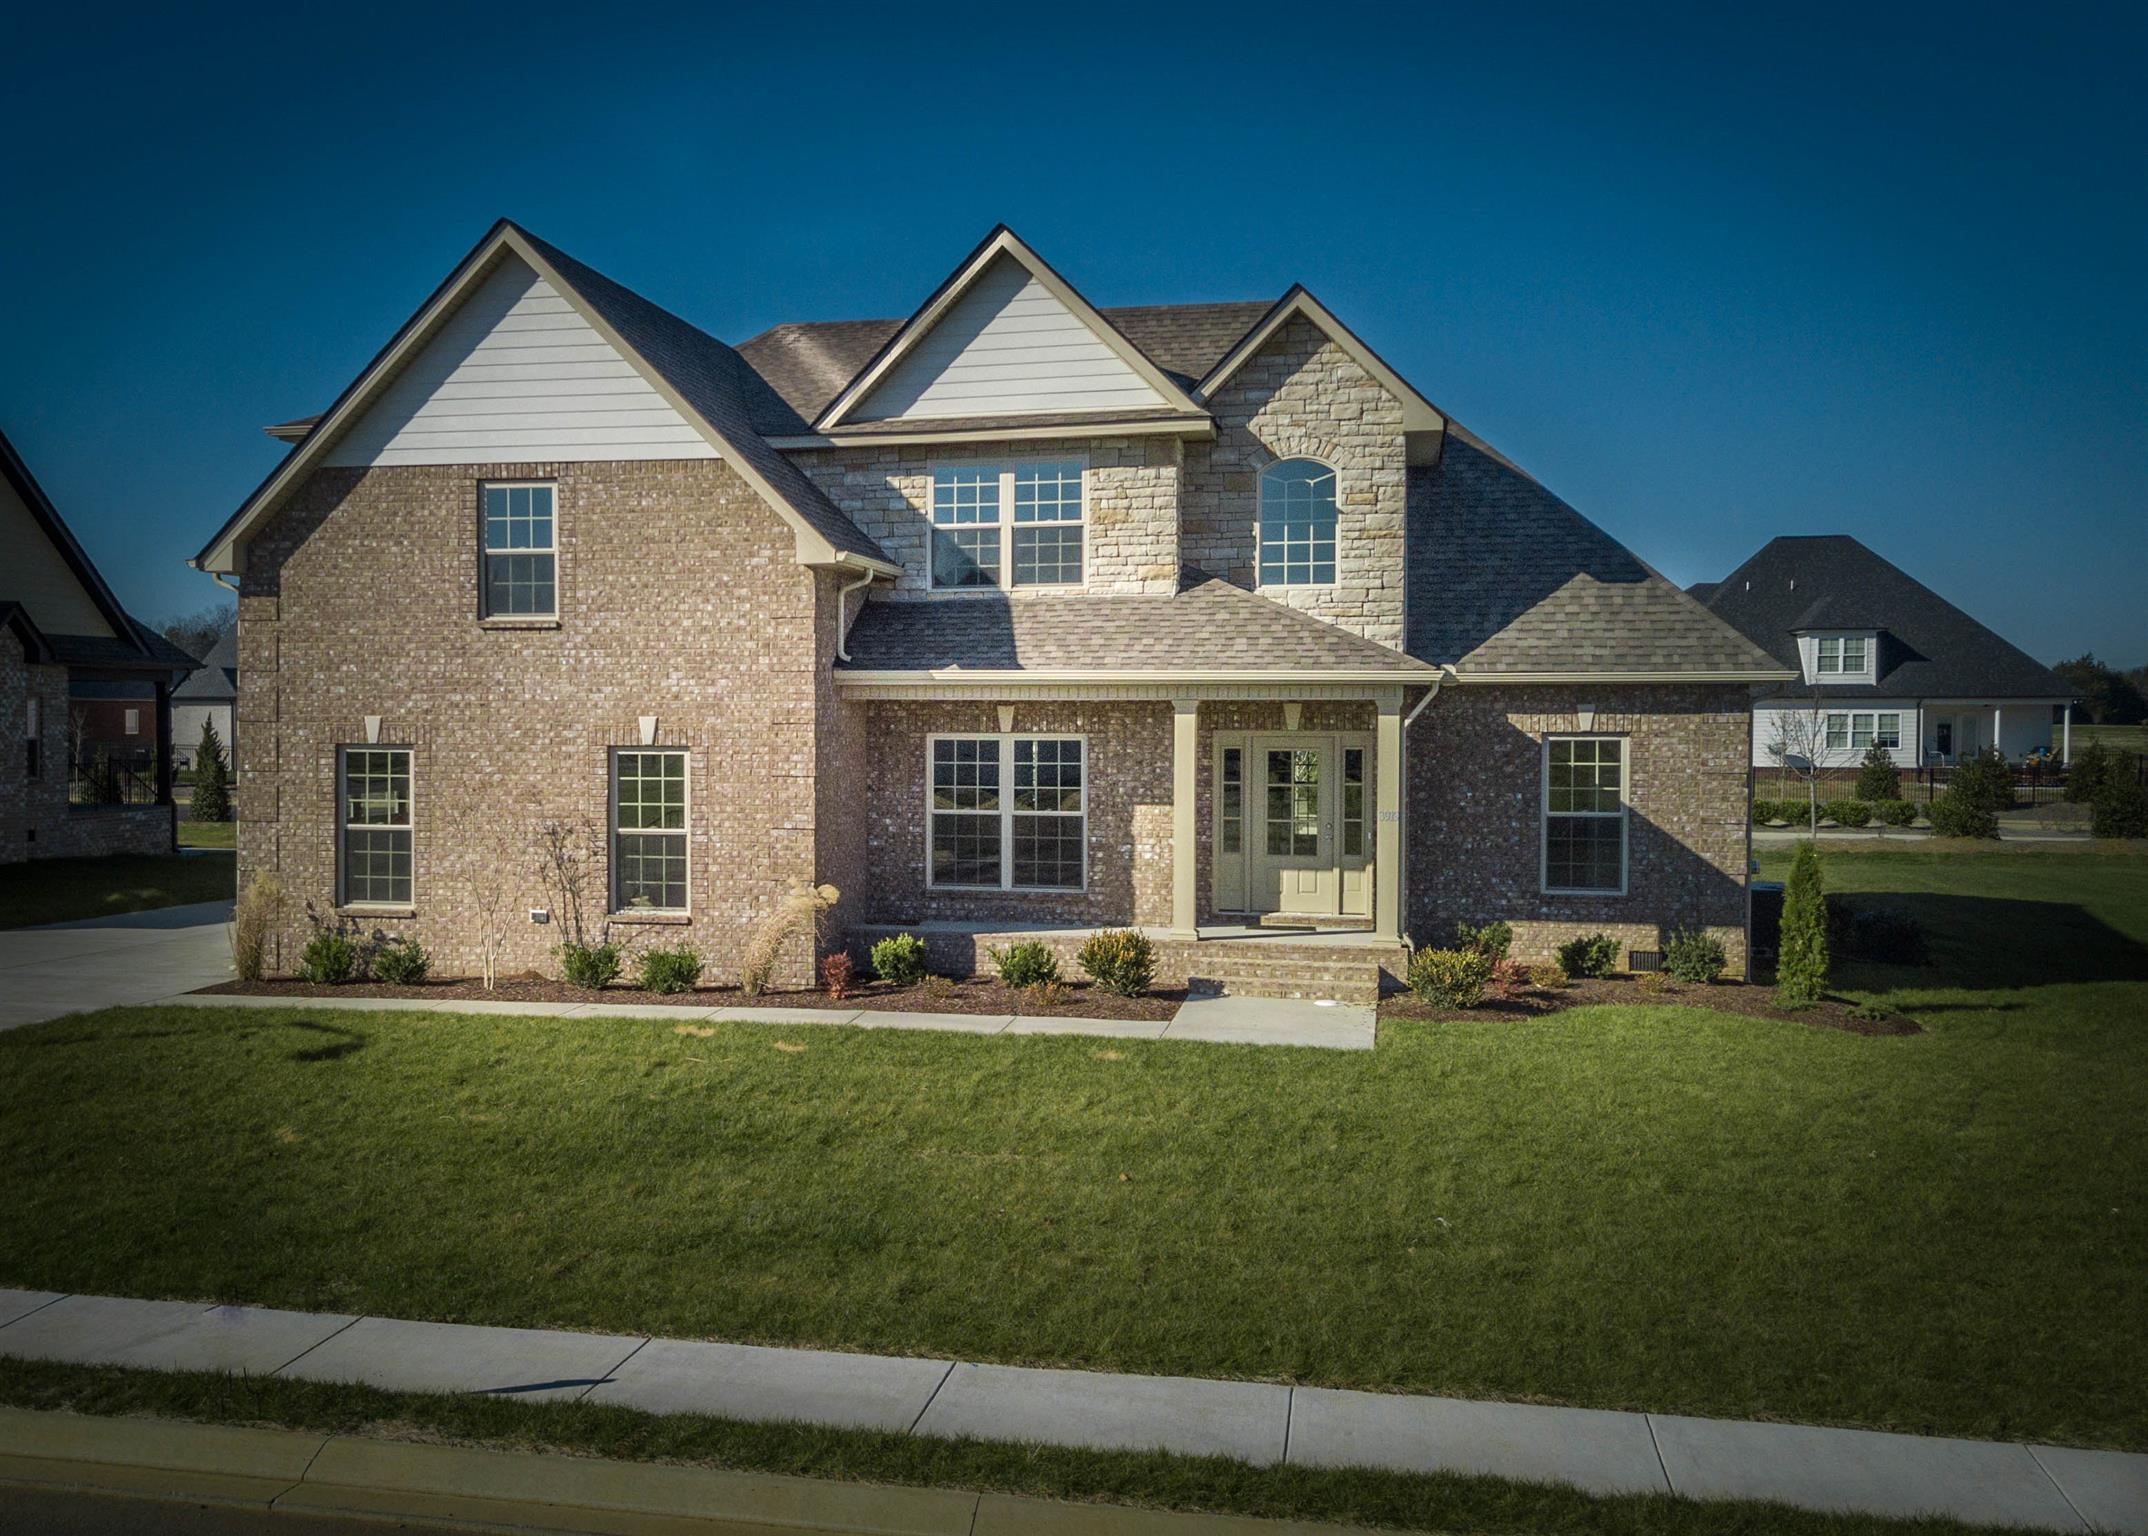 Photo of 3919 Gilreath Place Lot 57  Murfreesboro  TN